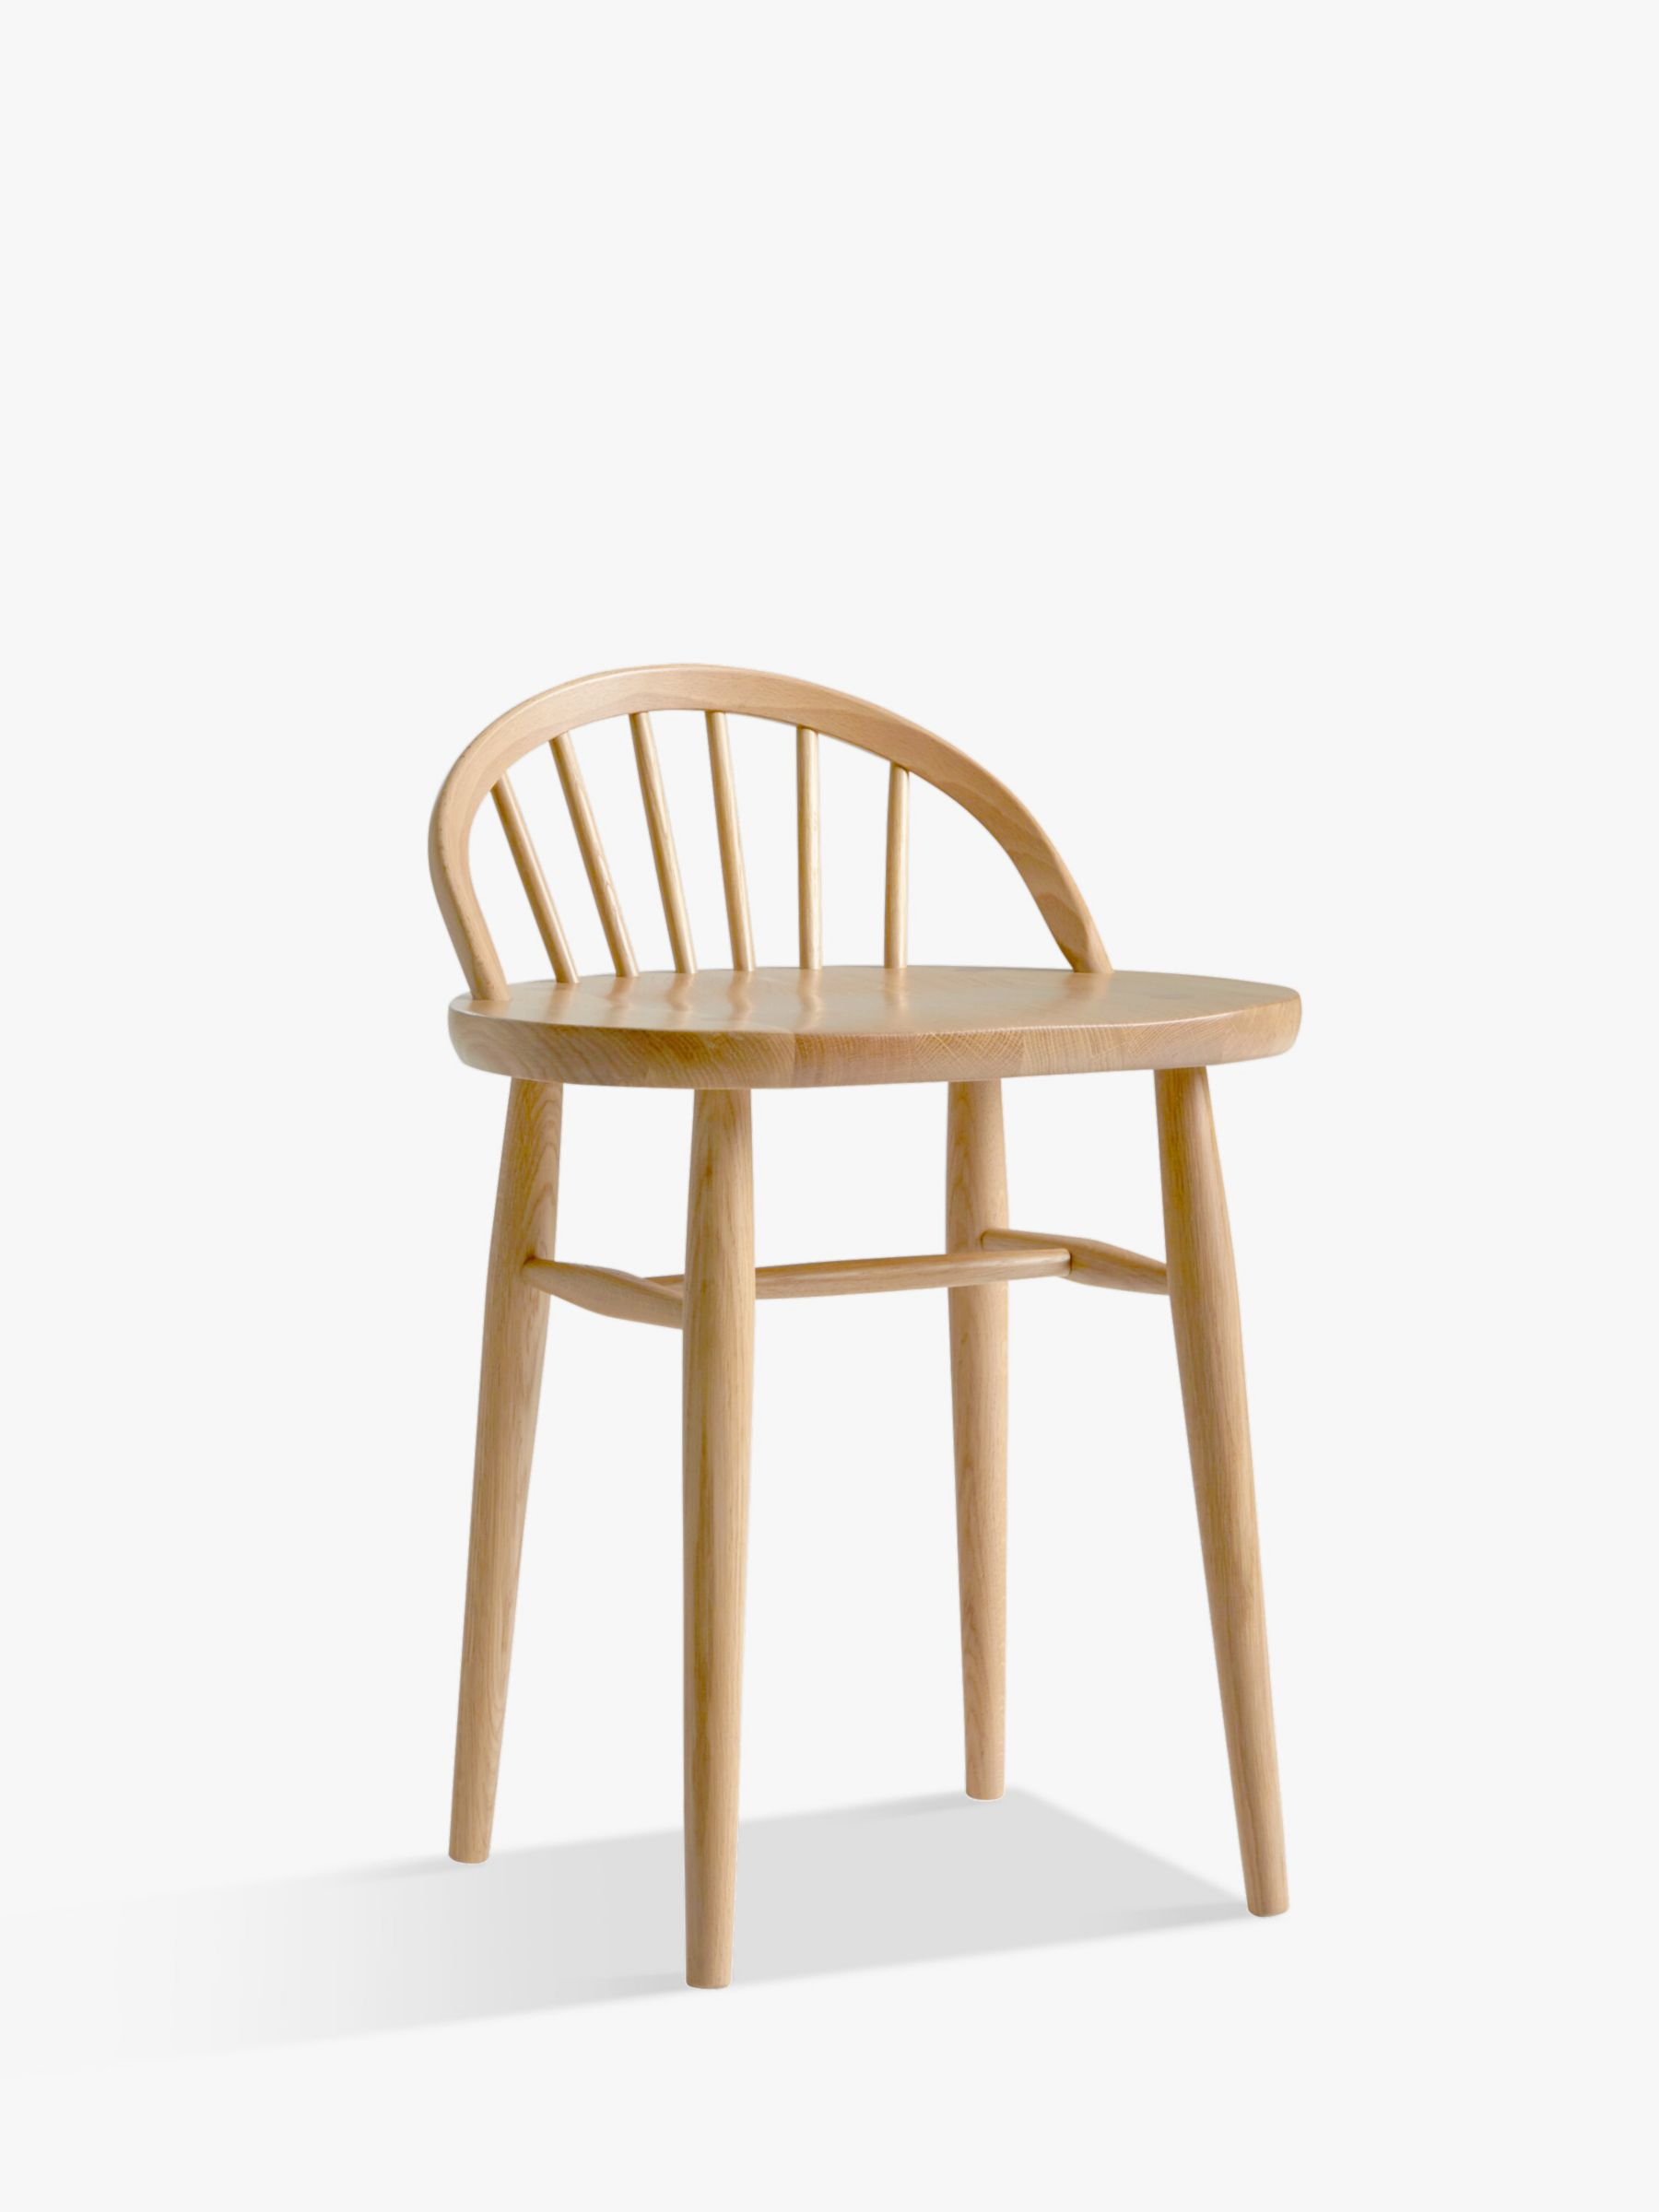 ercol for John Lewis Shalstone Dressing Table Chair at